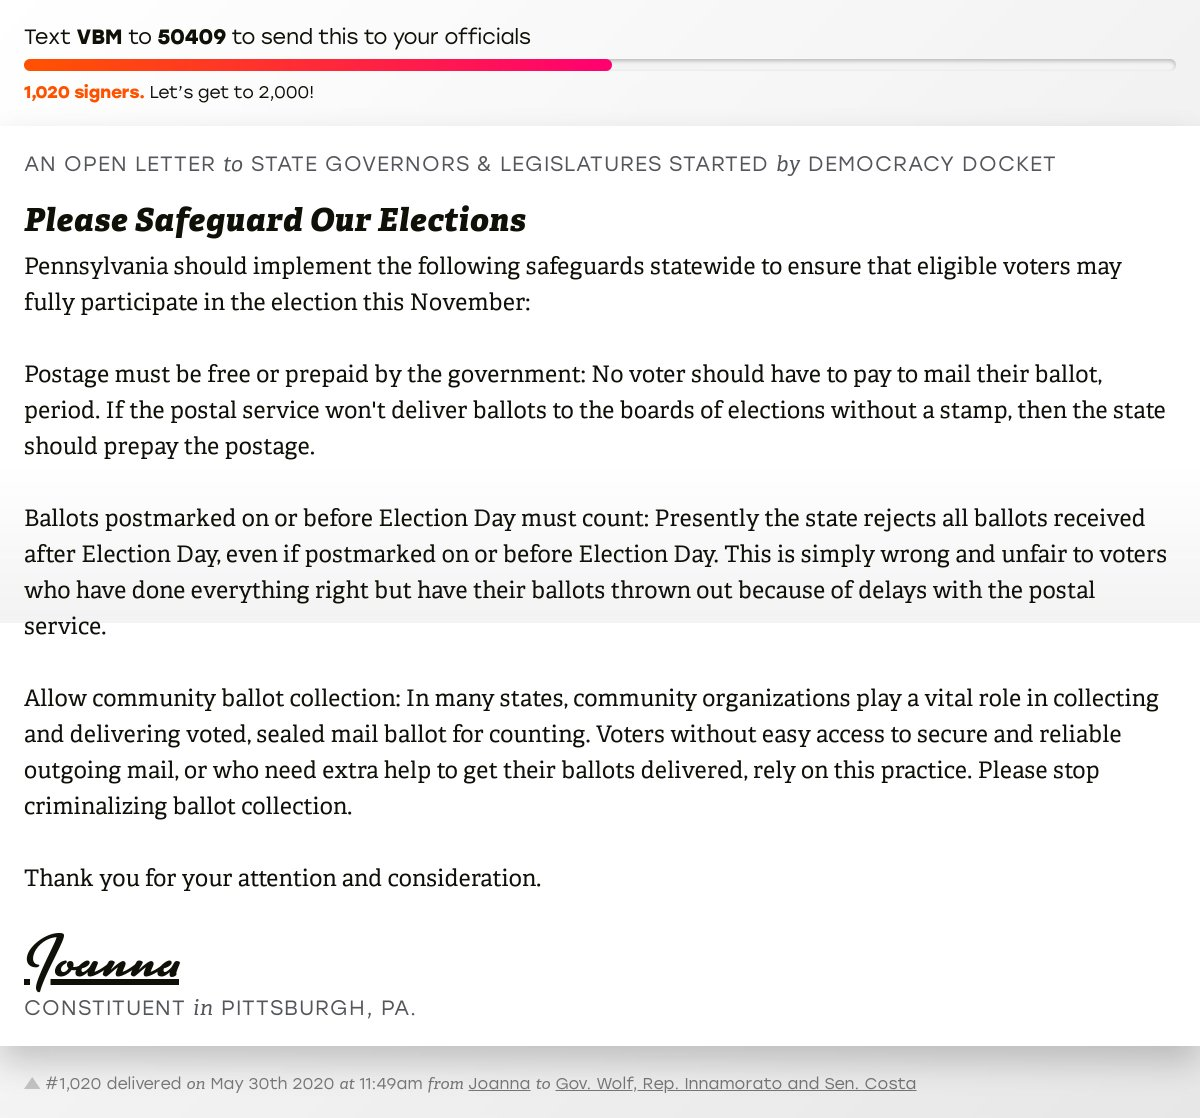 """Support Joanna by signing """"Please Safeguard Our Elections"""" and I'll deliver a copy to your officials: https://twitter.com/messages/compose?recipient_id=835740314006511618&text=VBM…   Last delivered to @GovernorTomWolf, Representative Innamorato and Senator Costa  #PApol #VoteByMailpic.twitter.com/jxsaRduMKZ"""